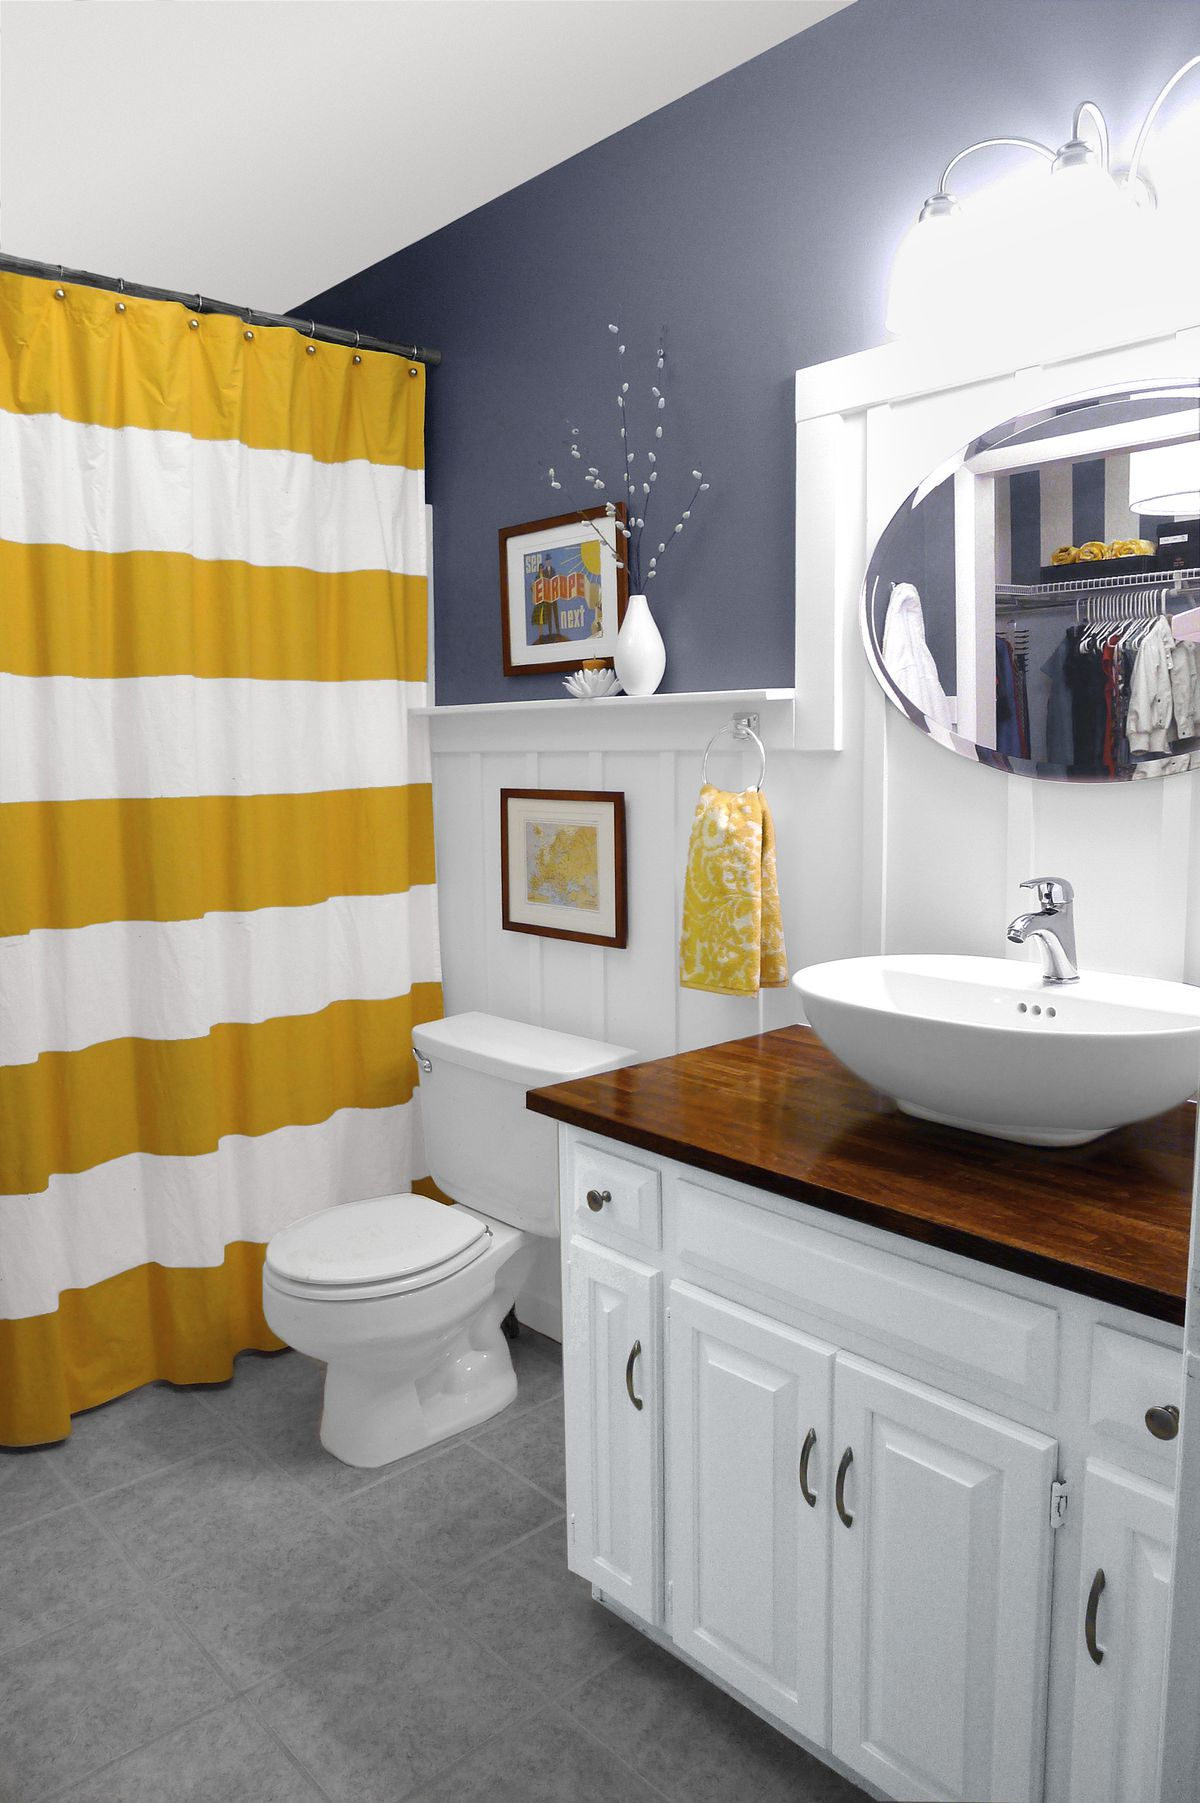 Wainscoting used in small bathroom remodel.